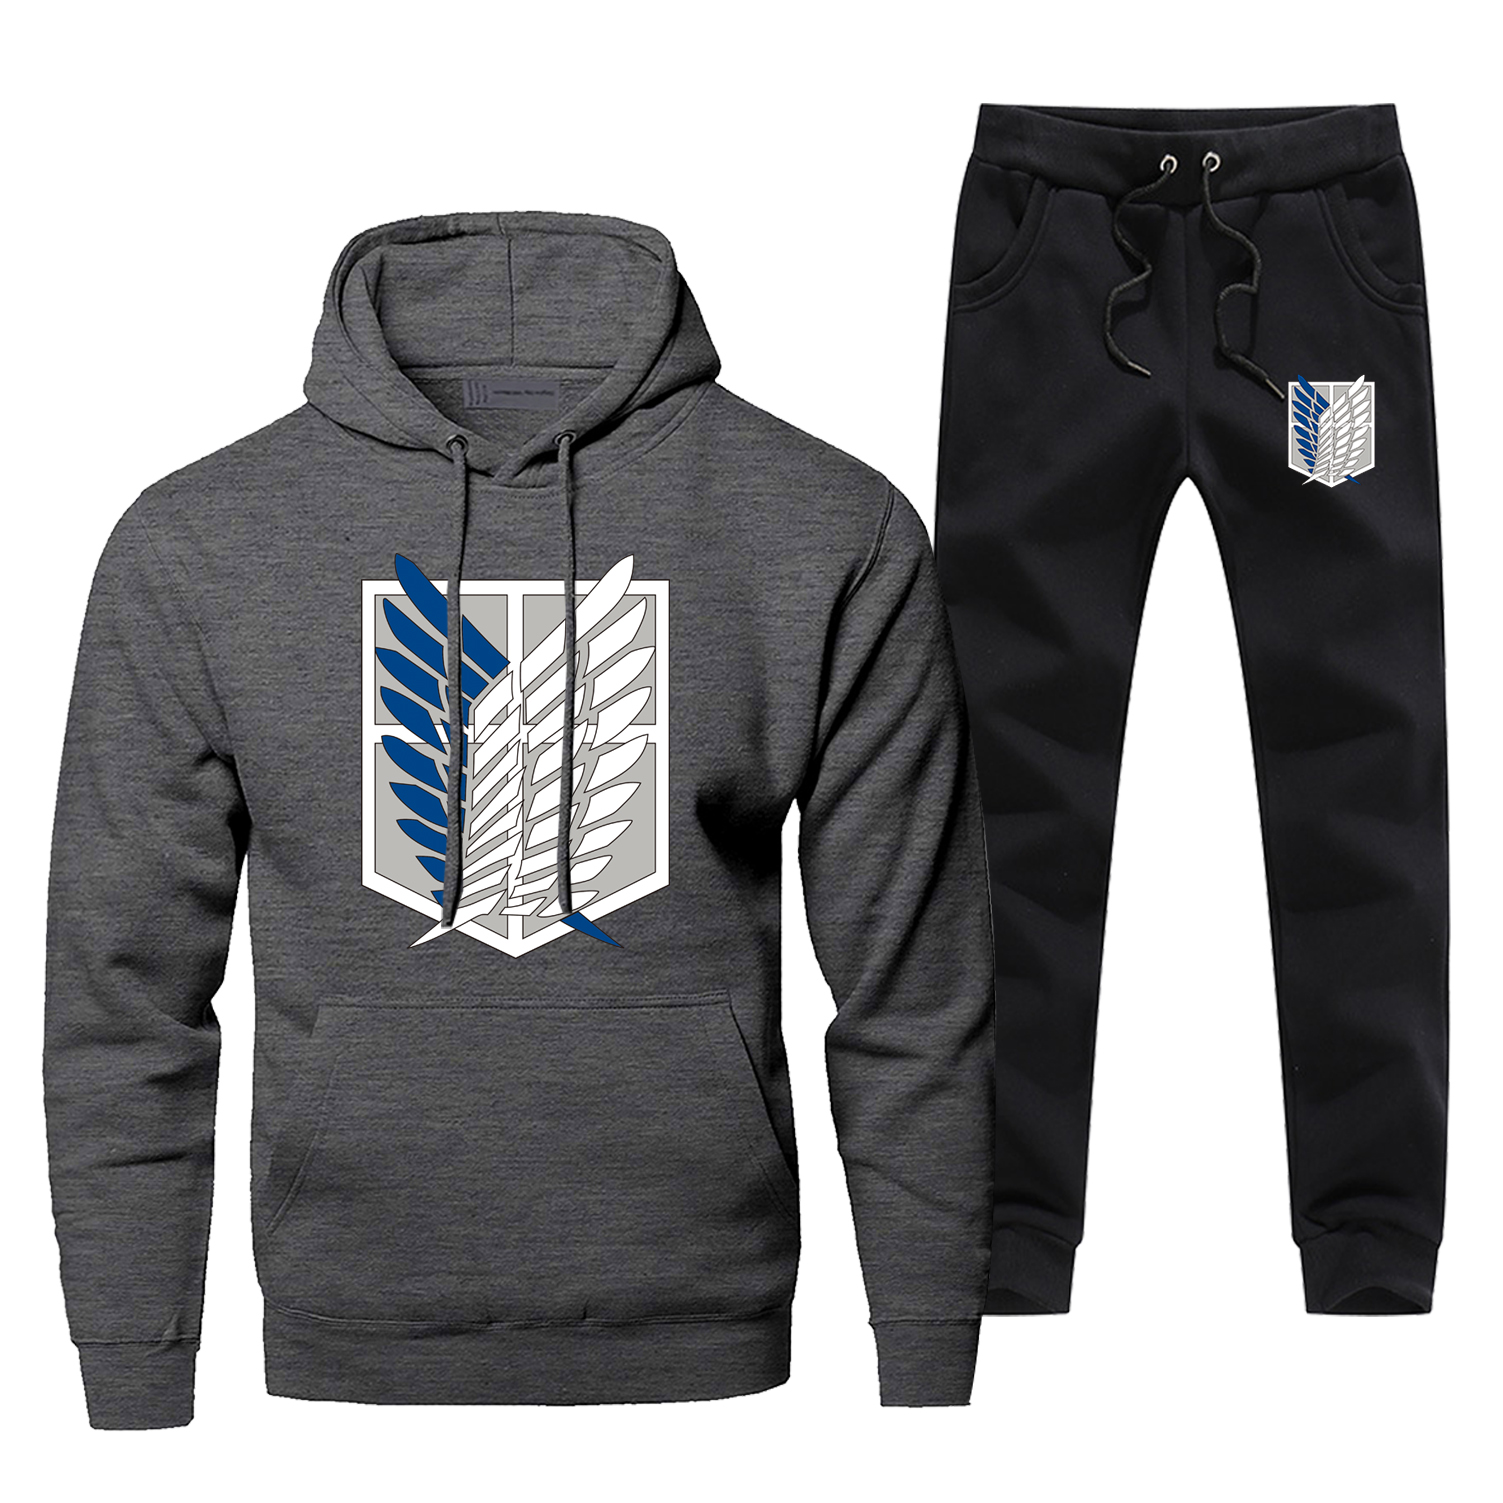 Attack On Japan Anime Male Set Titan Casual Fashion Men's Full Suit Tracksuit Winter Fleece Scout Legion Cosplay Men's Sets